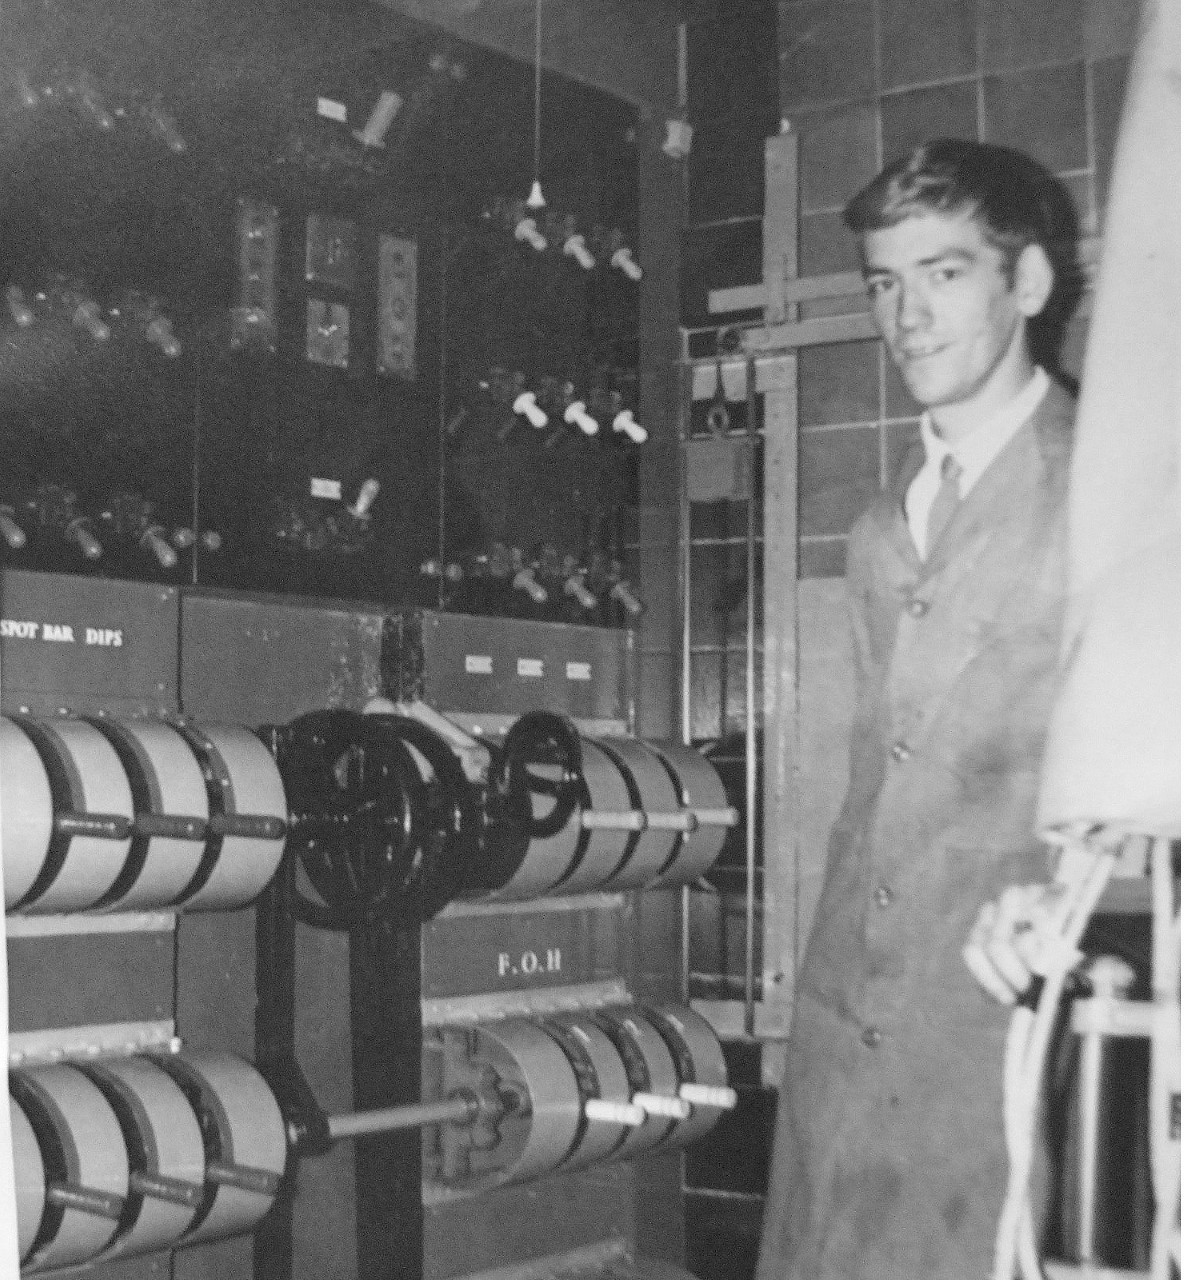 Event organiser Peter Davies at the Regal Cinema lighting board in 1967